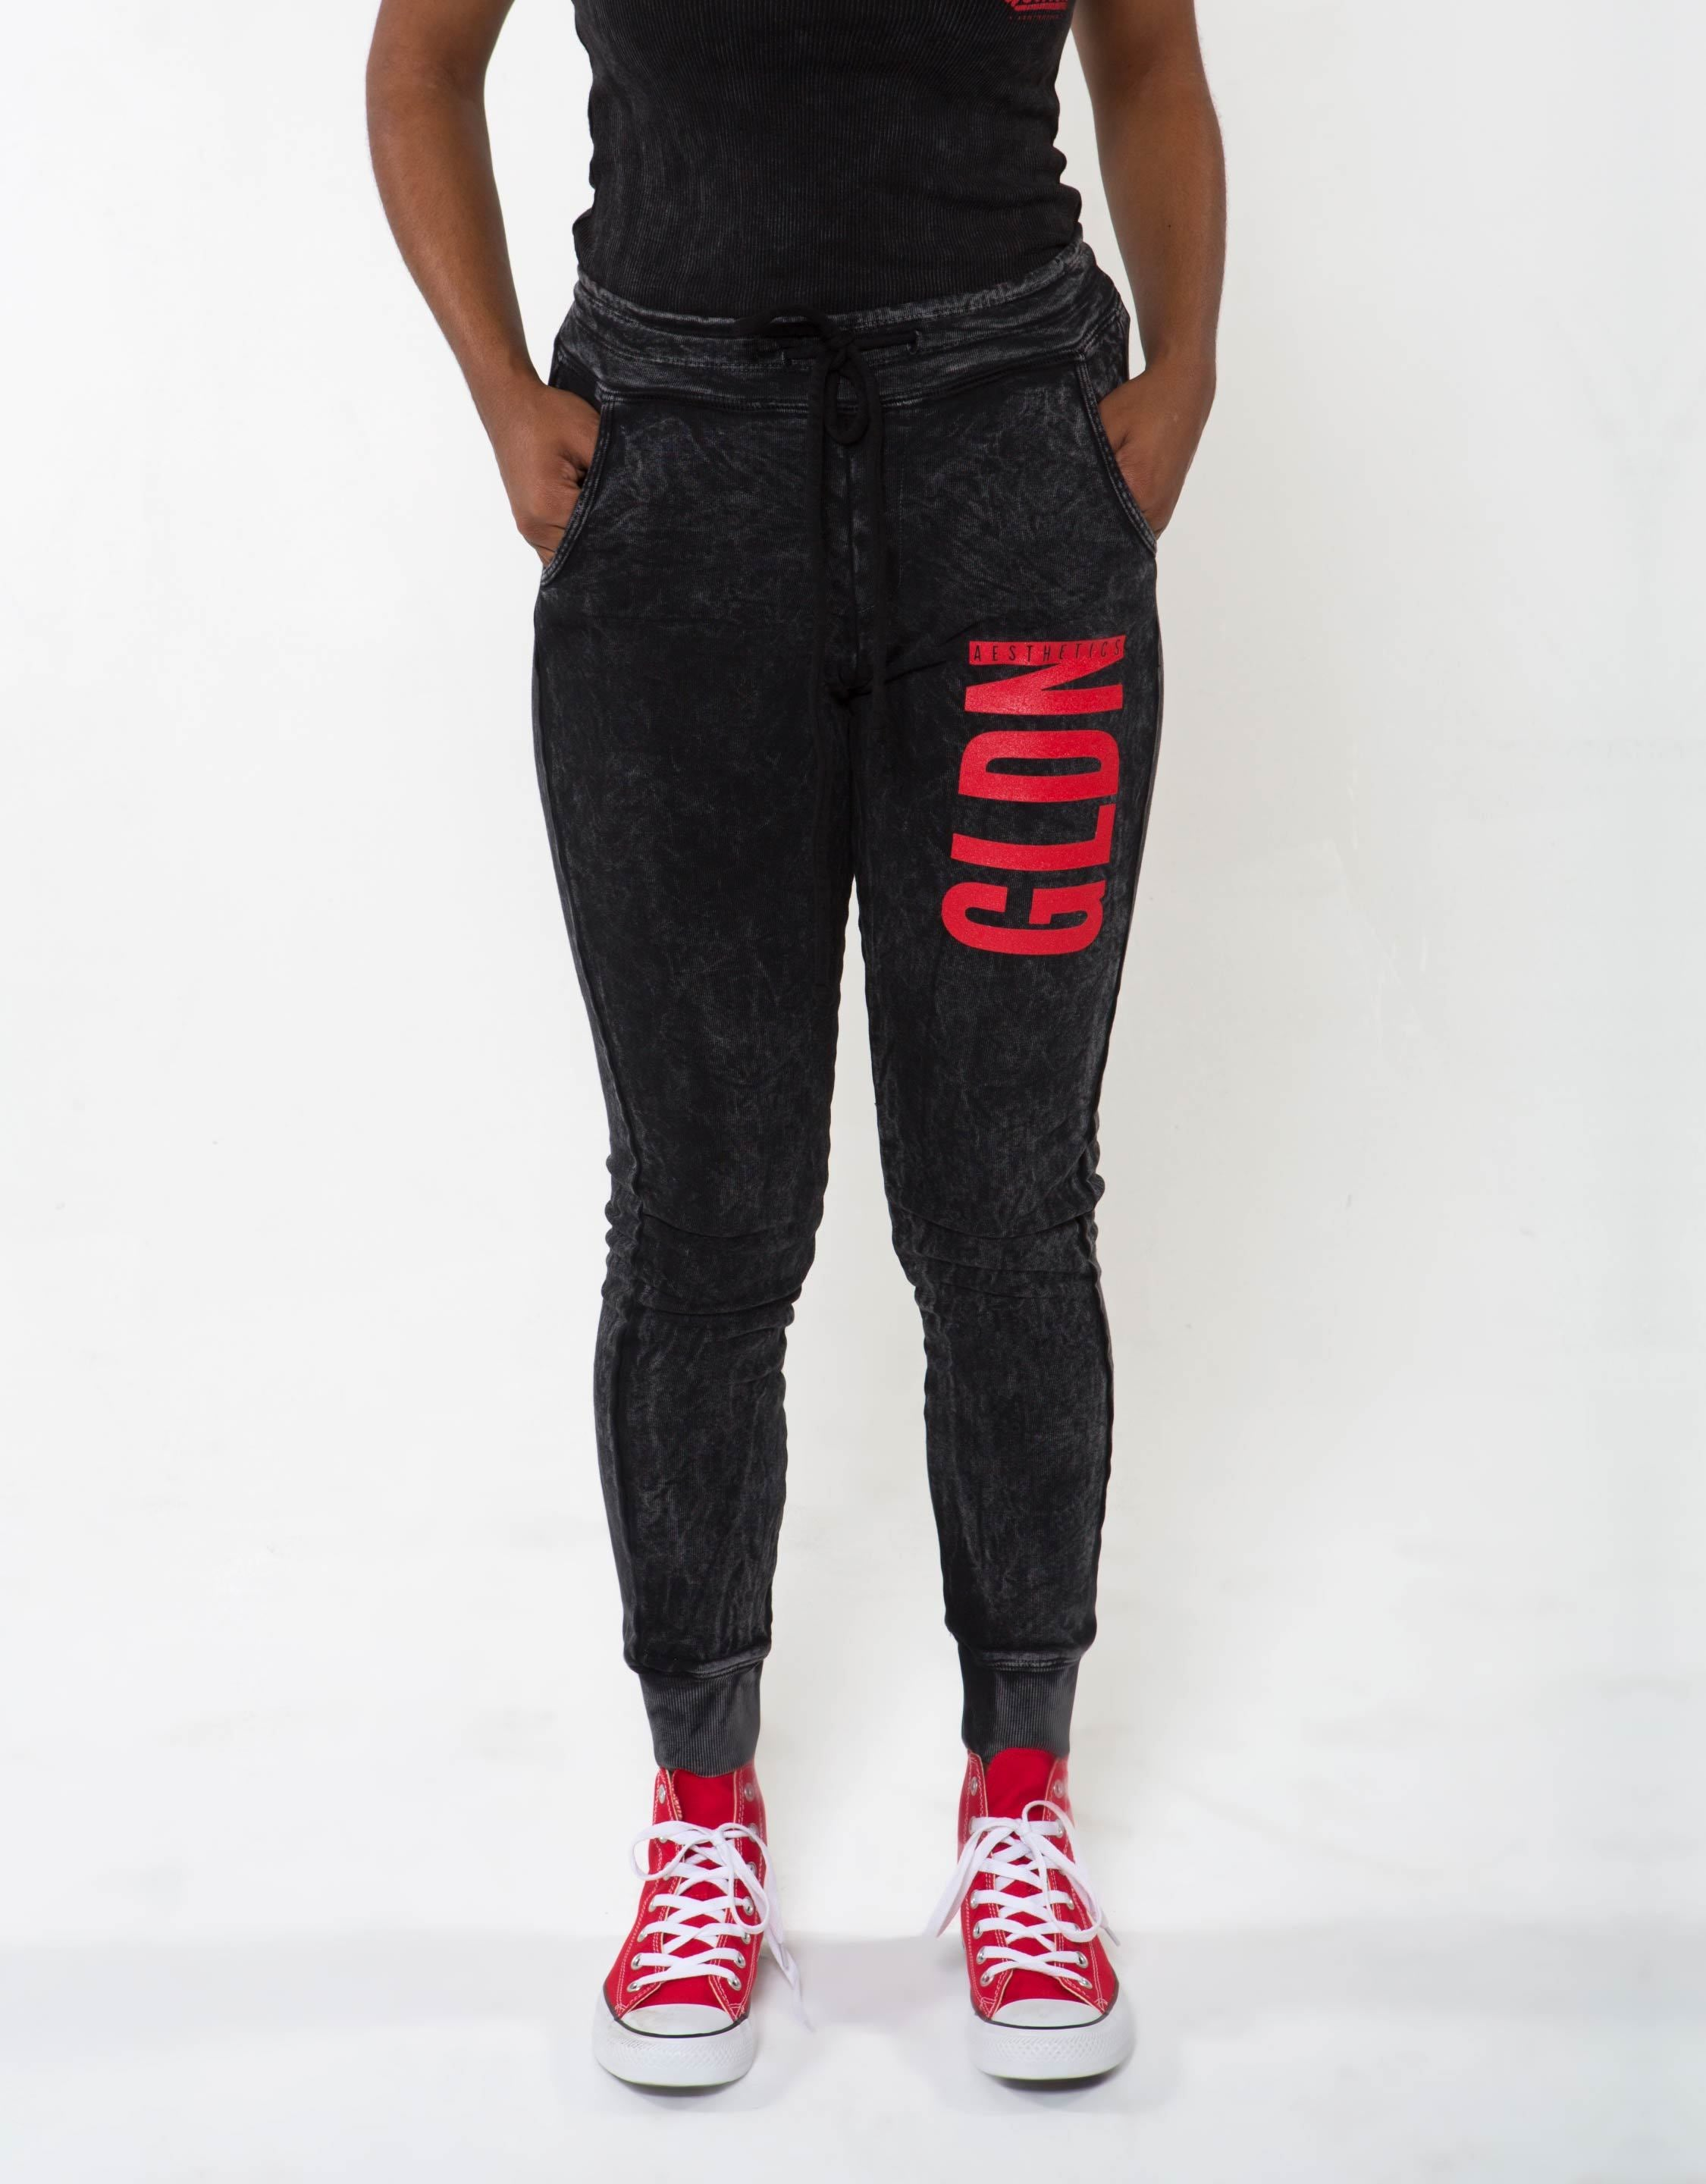 GA Her Joggers - Black - Golden Aesthetics